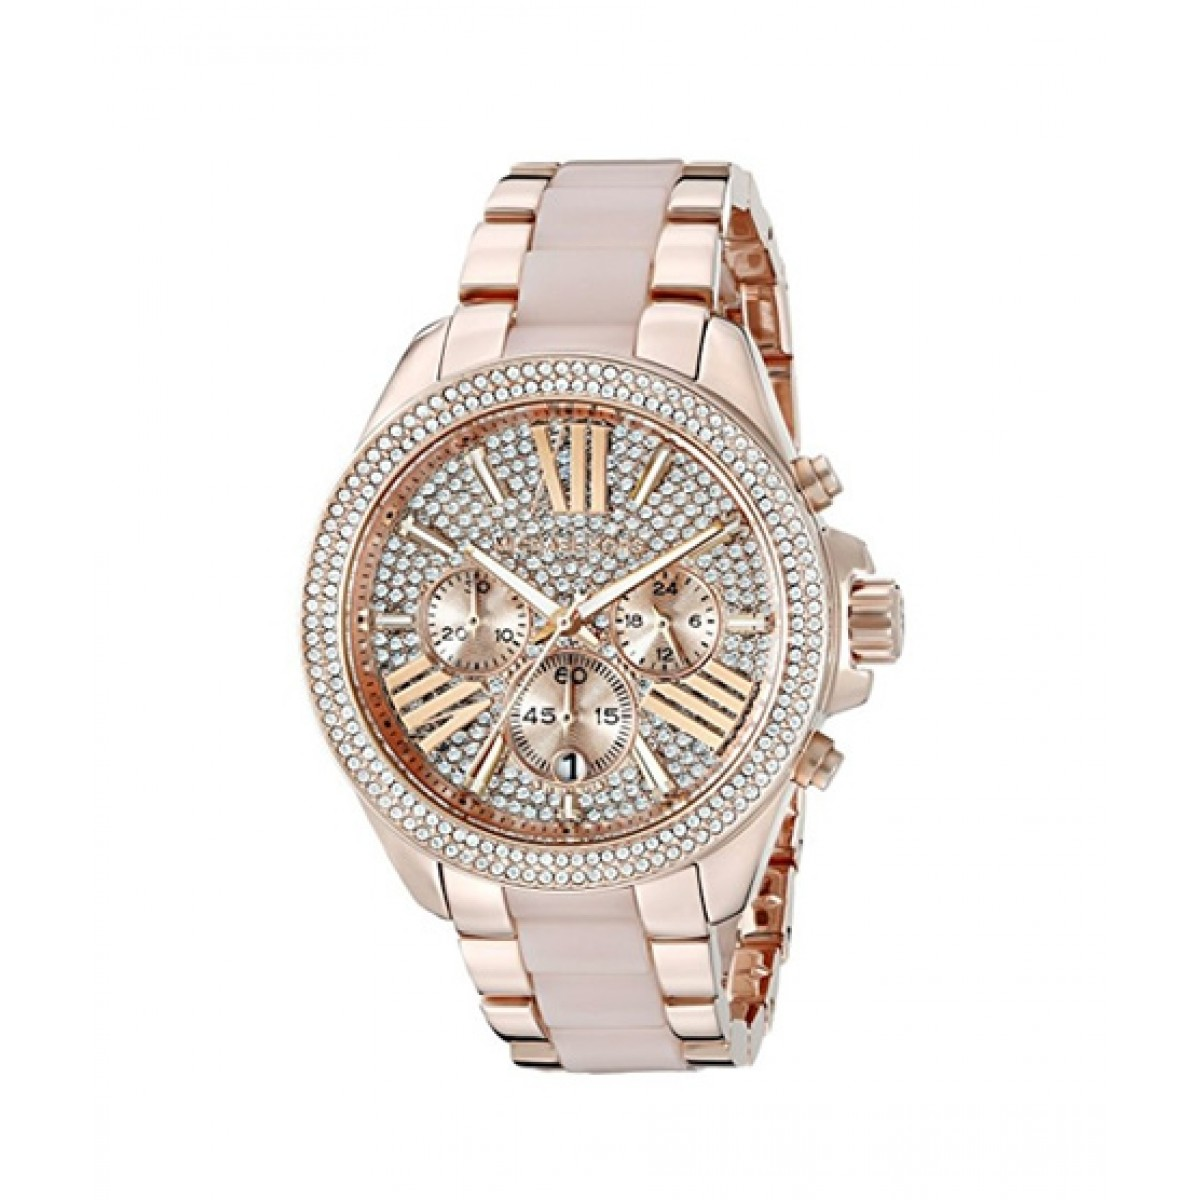 75dd584fac24 Michael Kors Parker Women s Watch Price in Pakistan